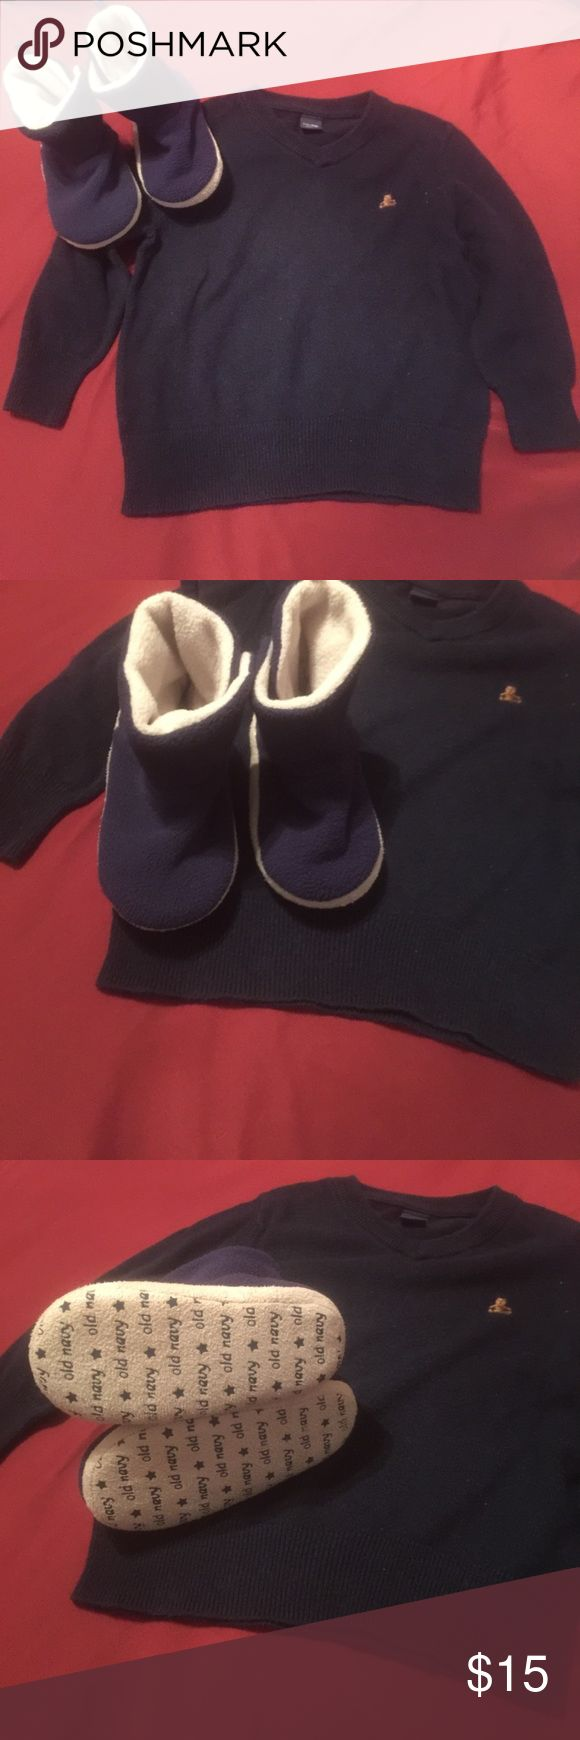 Baby gap sweater and old navy slippers Dark blue baby gap sweater in great condition and old navy slippers used maybe once or twice.  Can be sold together or separate. GAP Shirts & Tops Sweaters